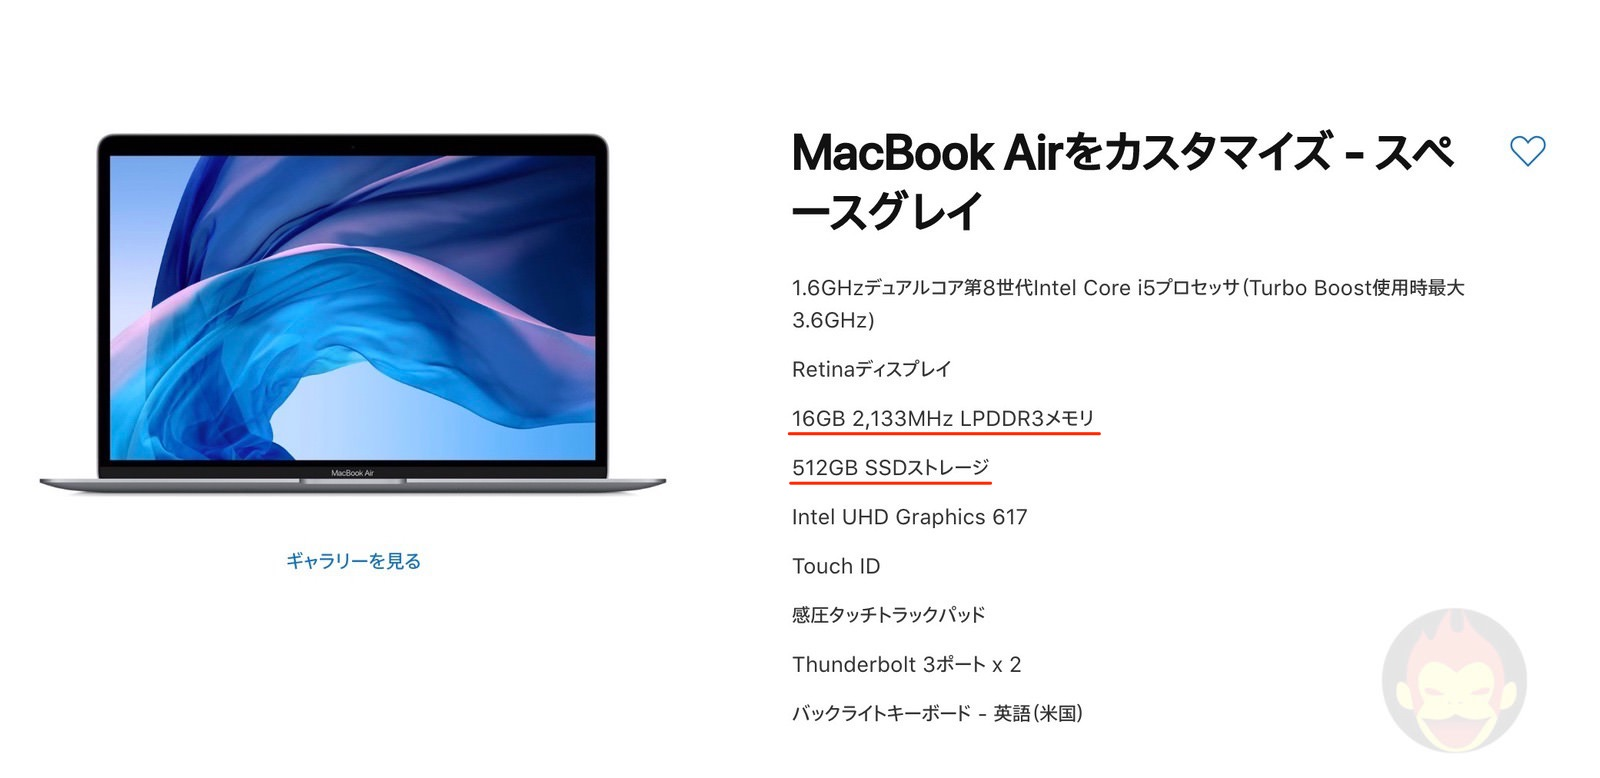 MacBook-Air-Customize-RAM-16GB-01-2.jpg